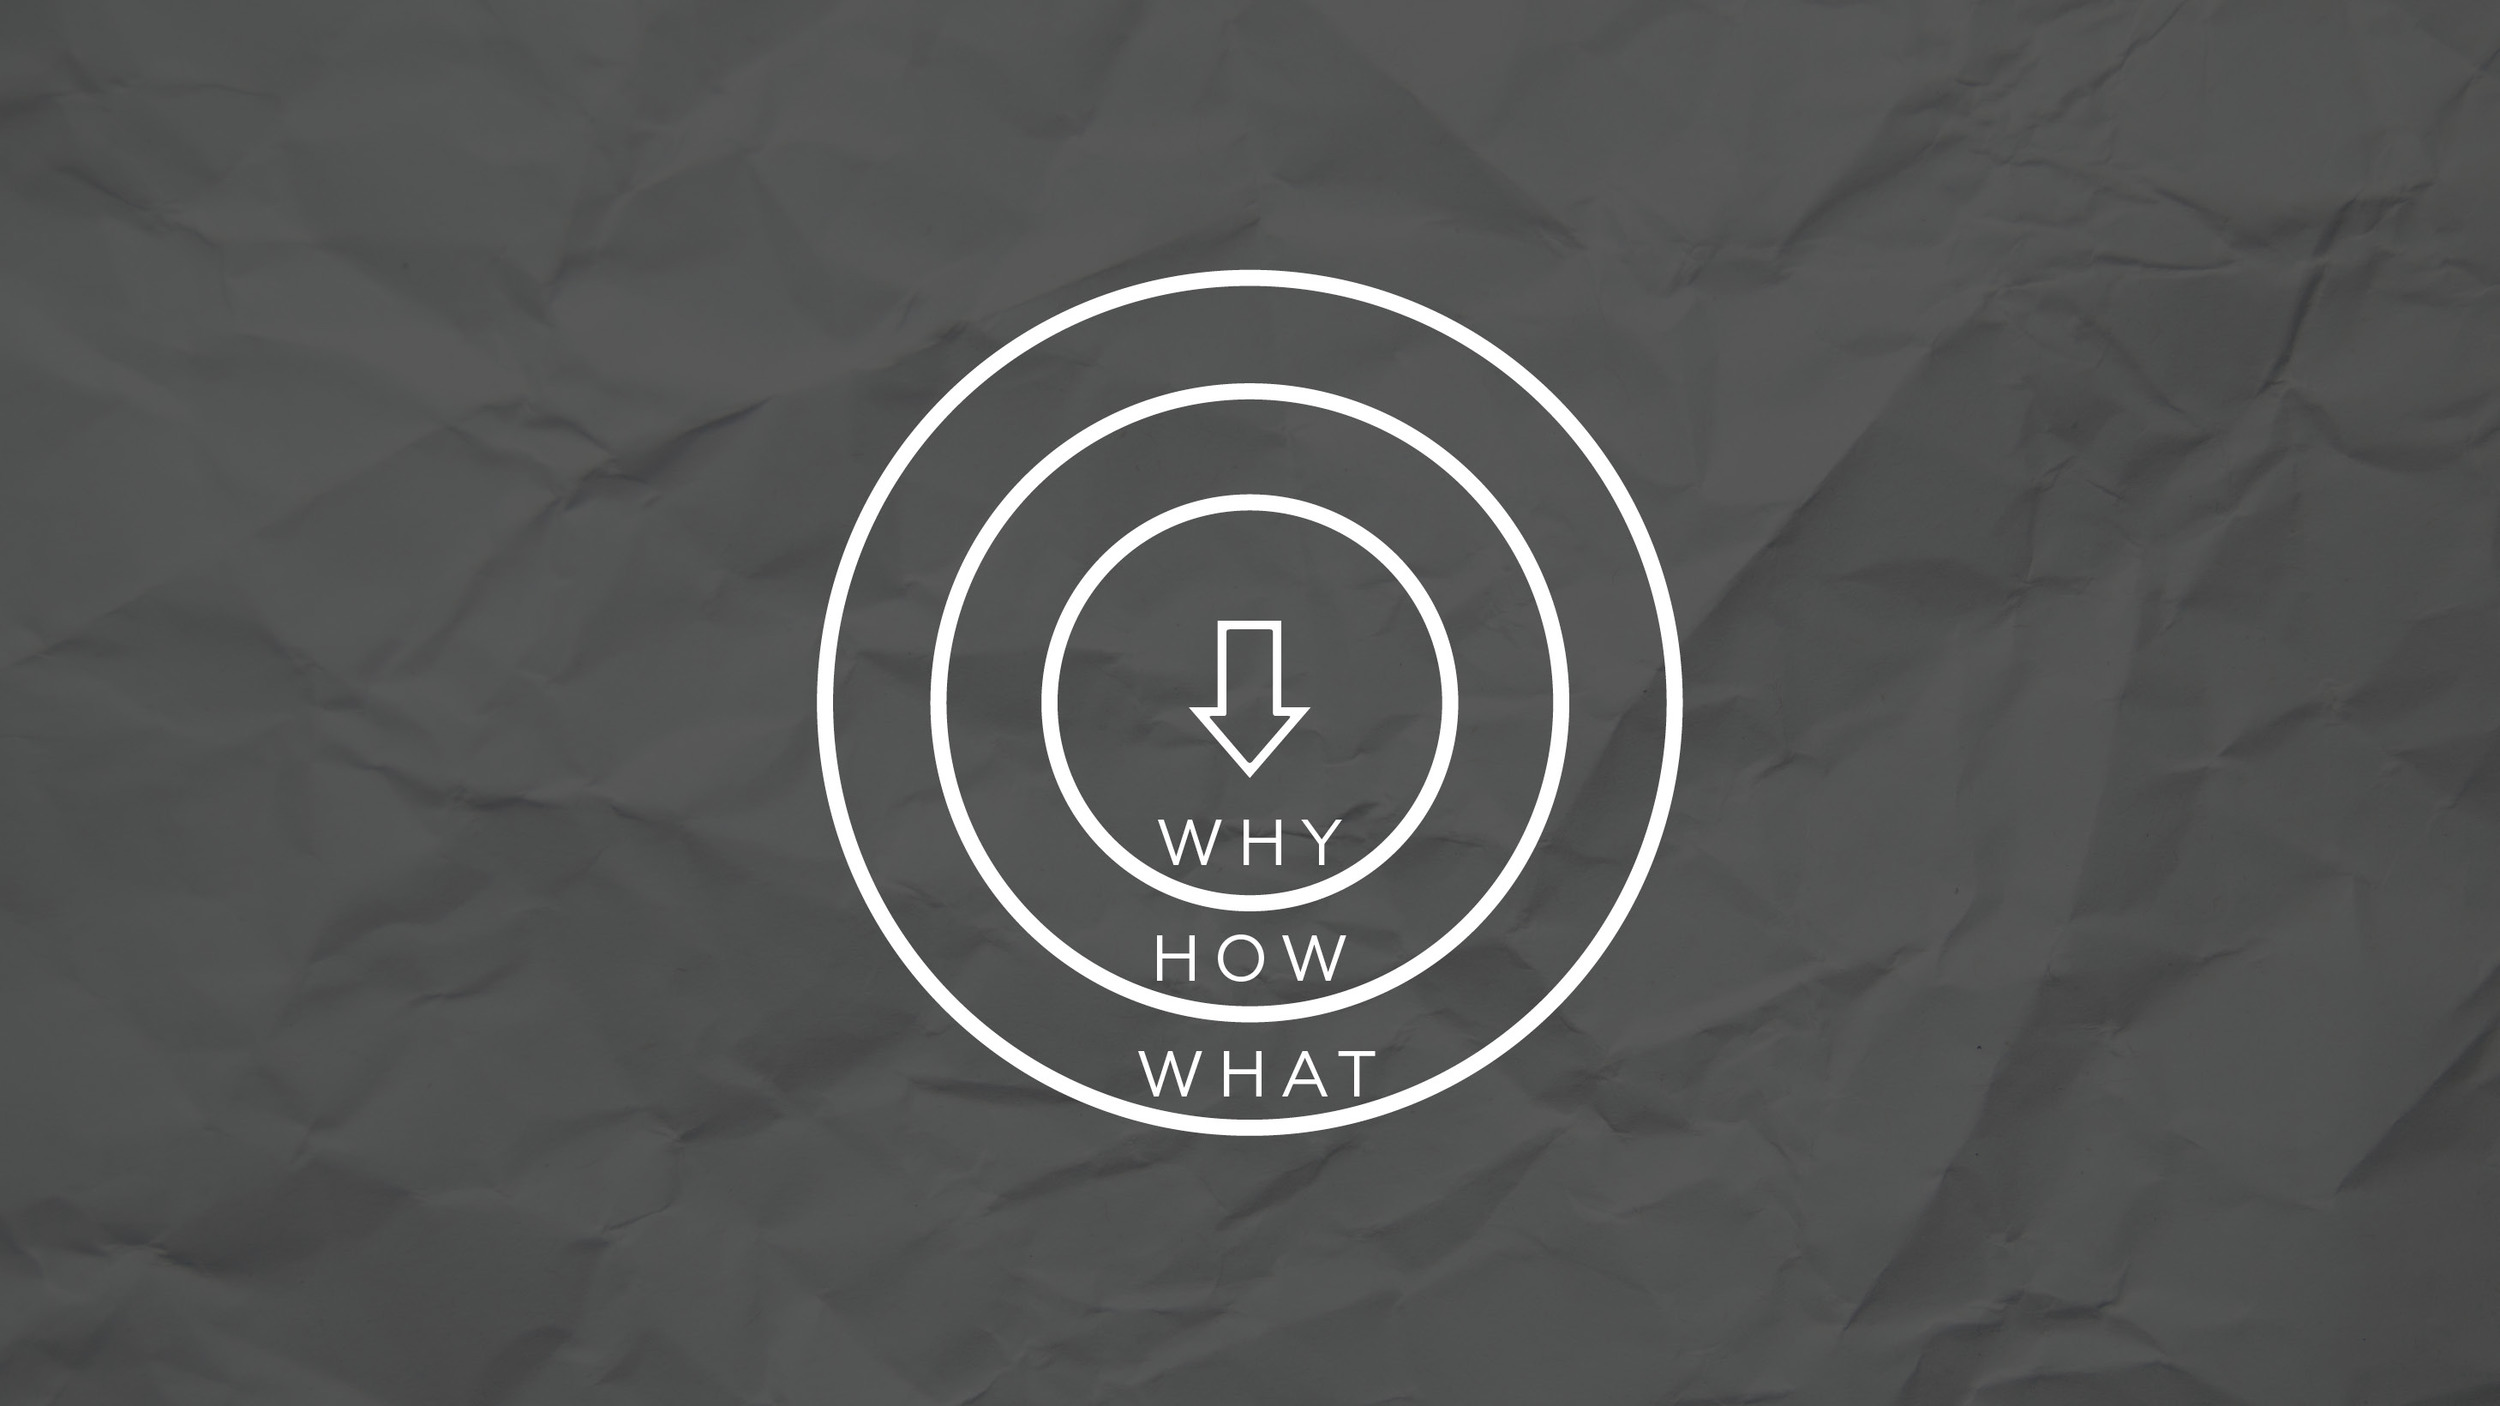 Why_How_What_Circle